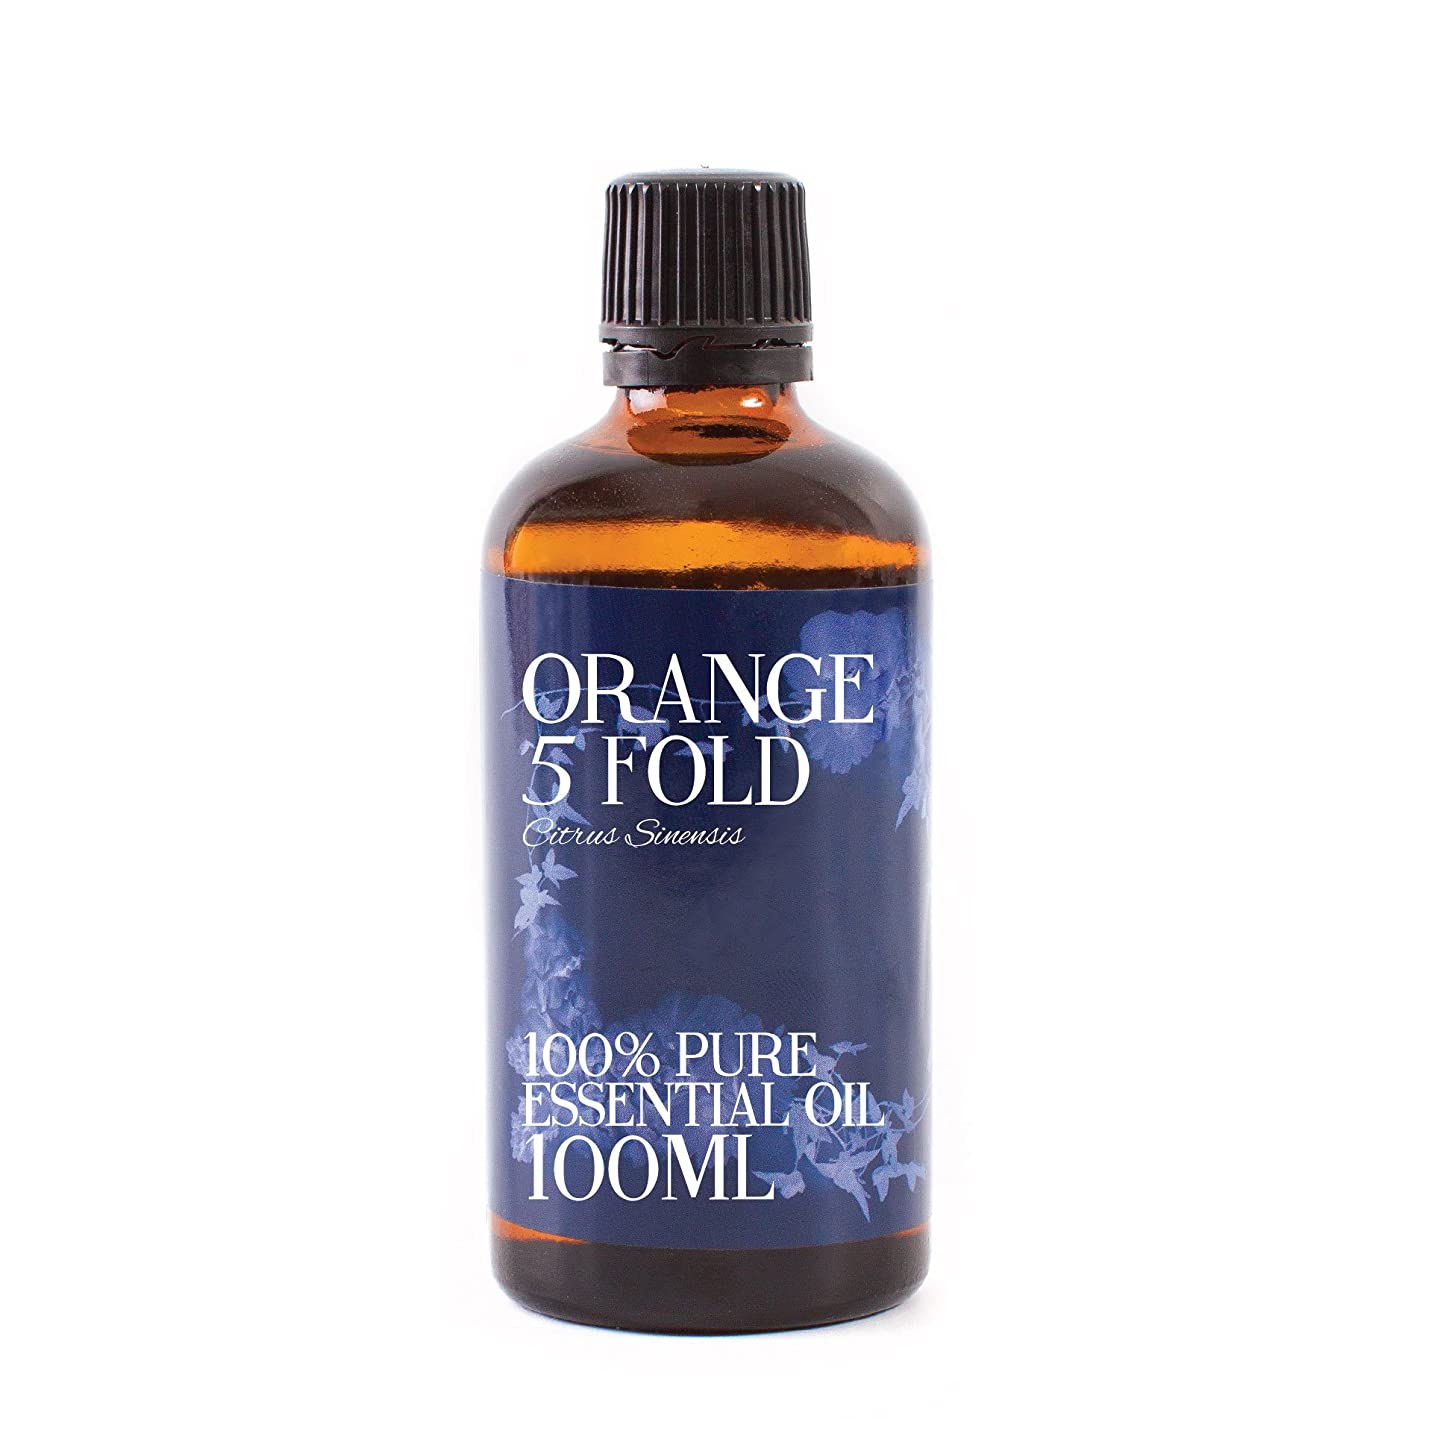 ヤング厳しいトレーニングMystic Moments | Orange 5 Fold Essential Oil - 100ml - 100% Pure